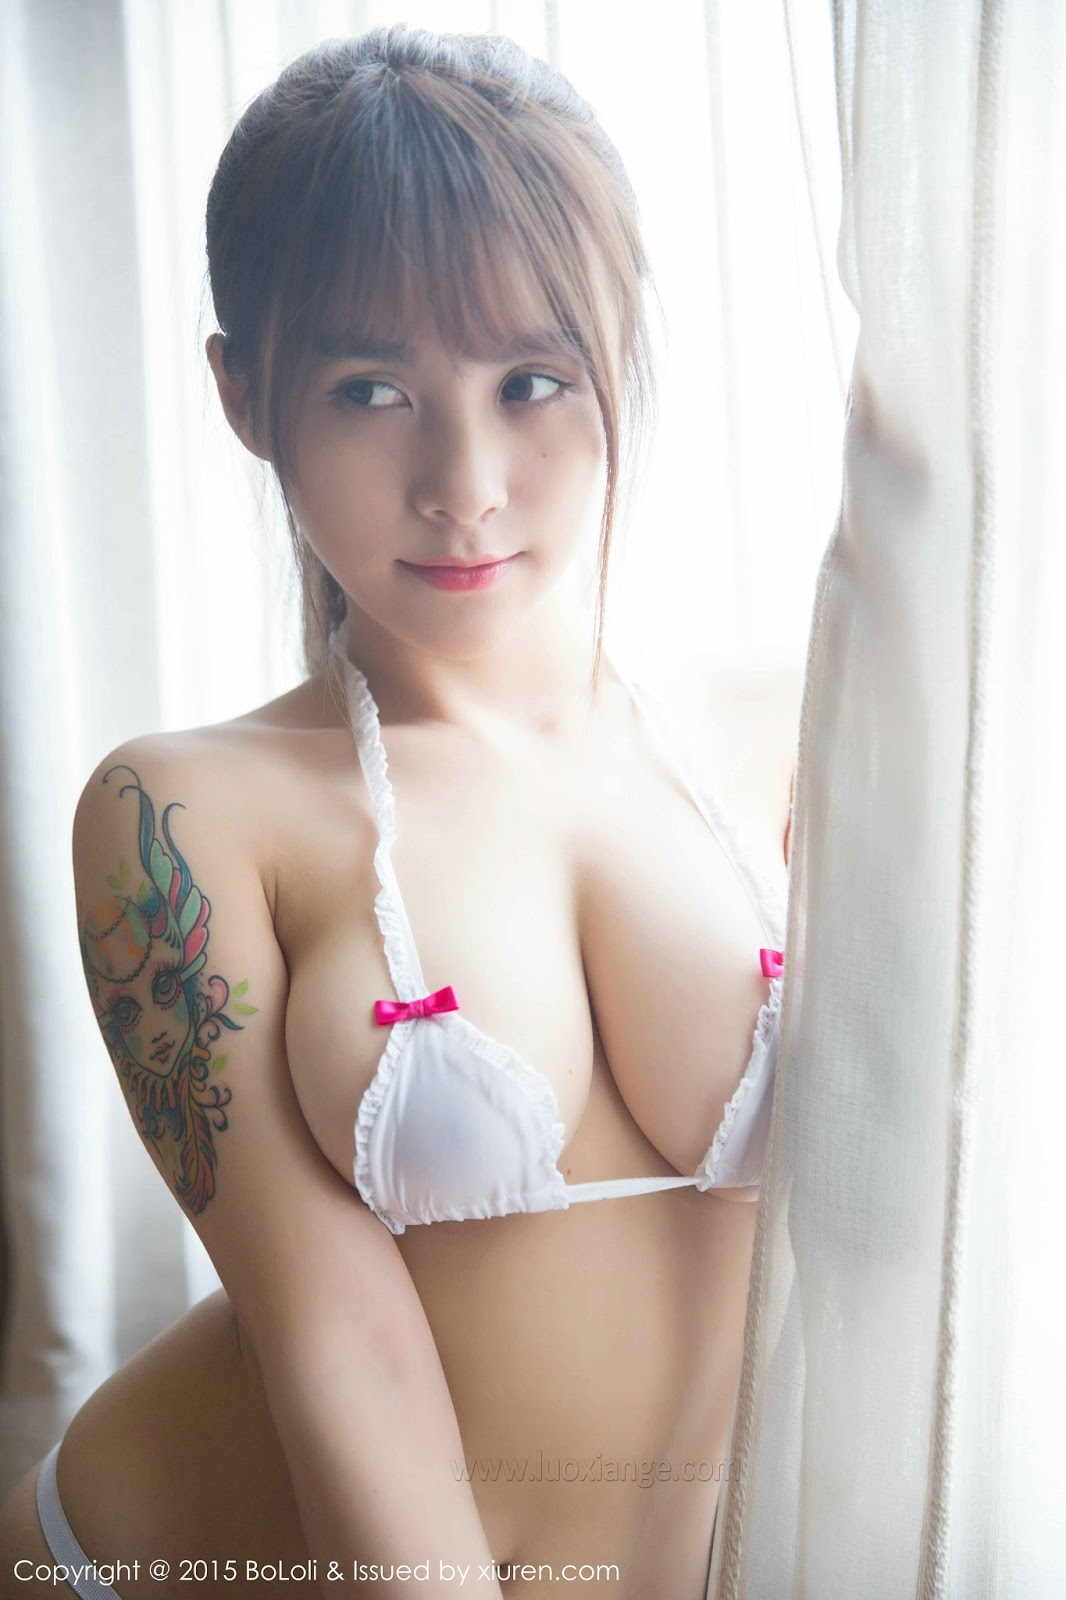 [BOLOLI] Vol.0063 夏美酱 [46P] | My Daily Sexy Asian Model Girls